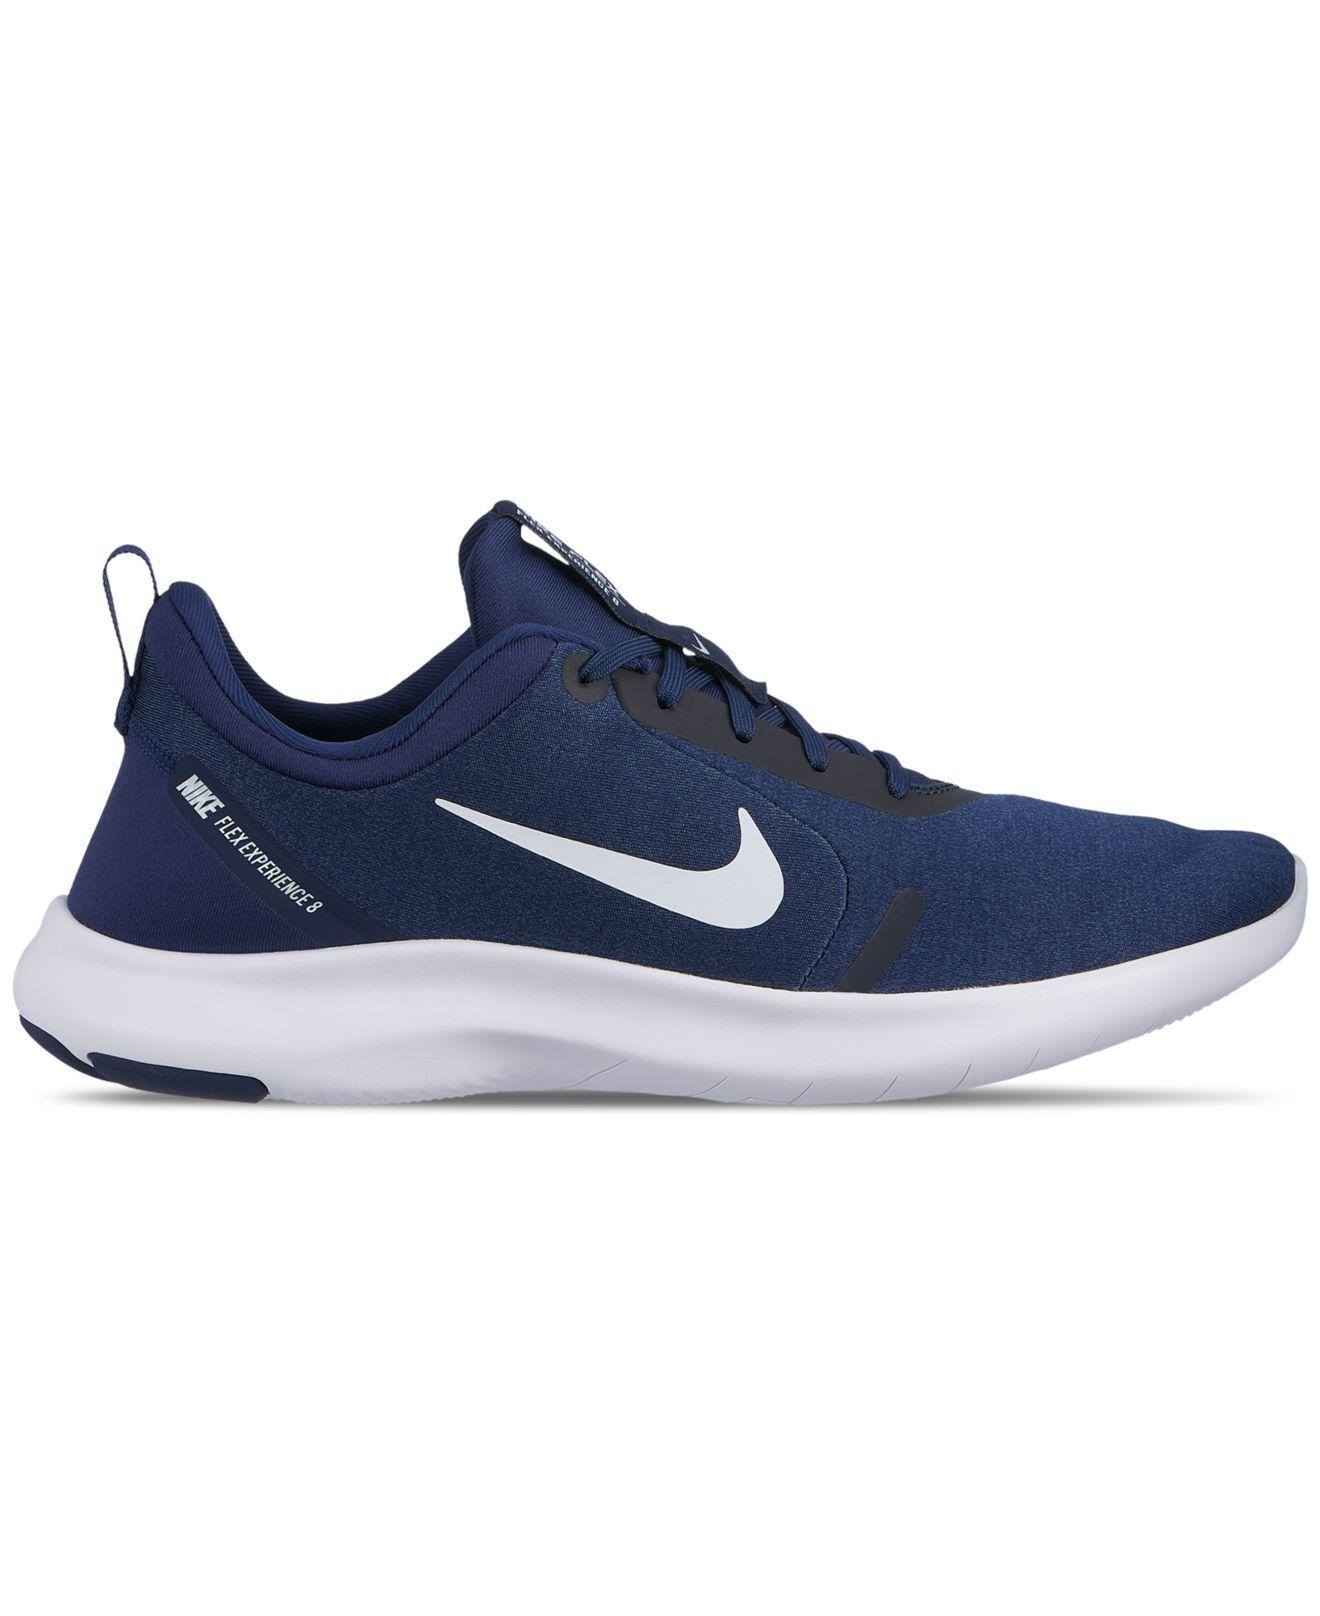 4218af8893213 Lyst - Nike Flex Experience Rn 8 Running Sneakers From Finish Line ...